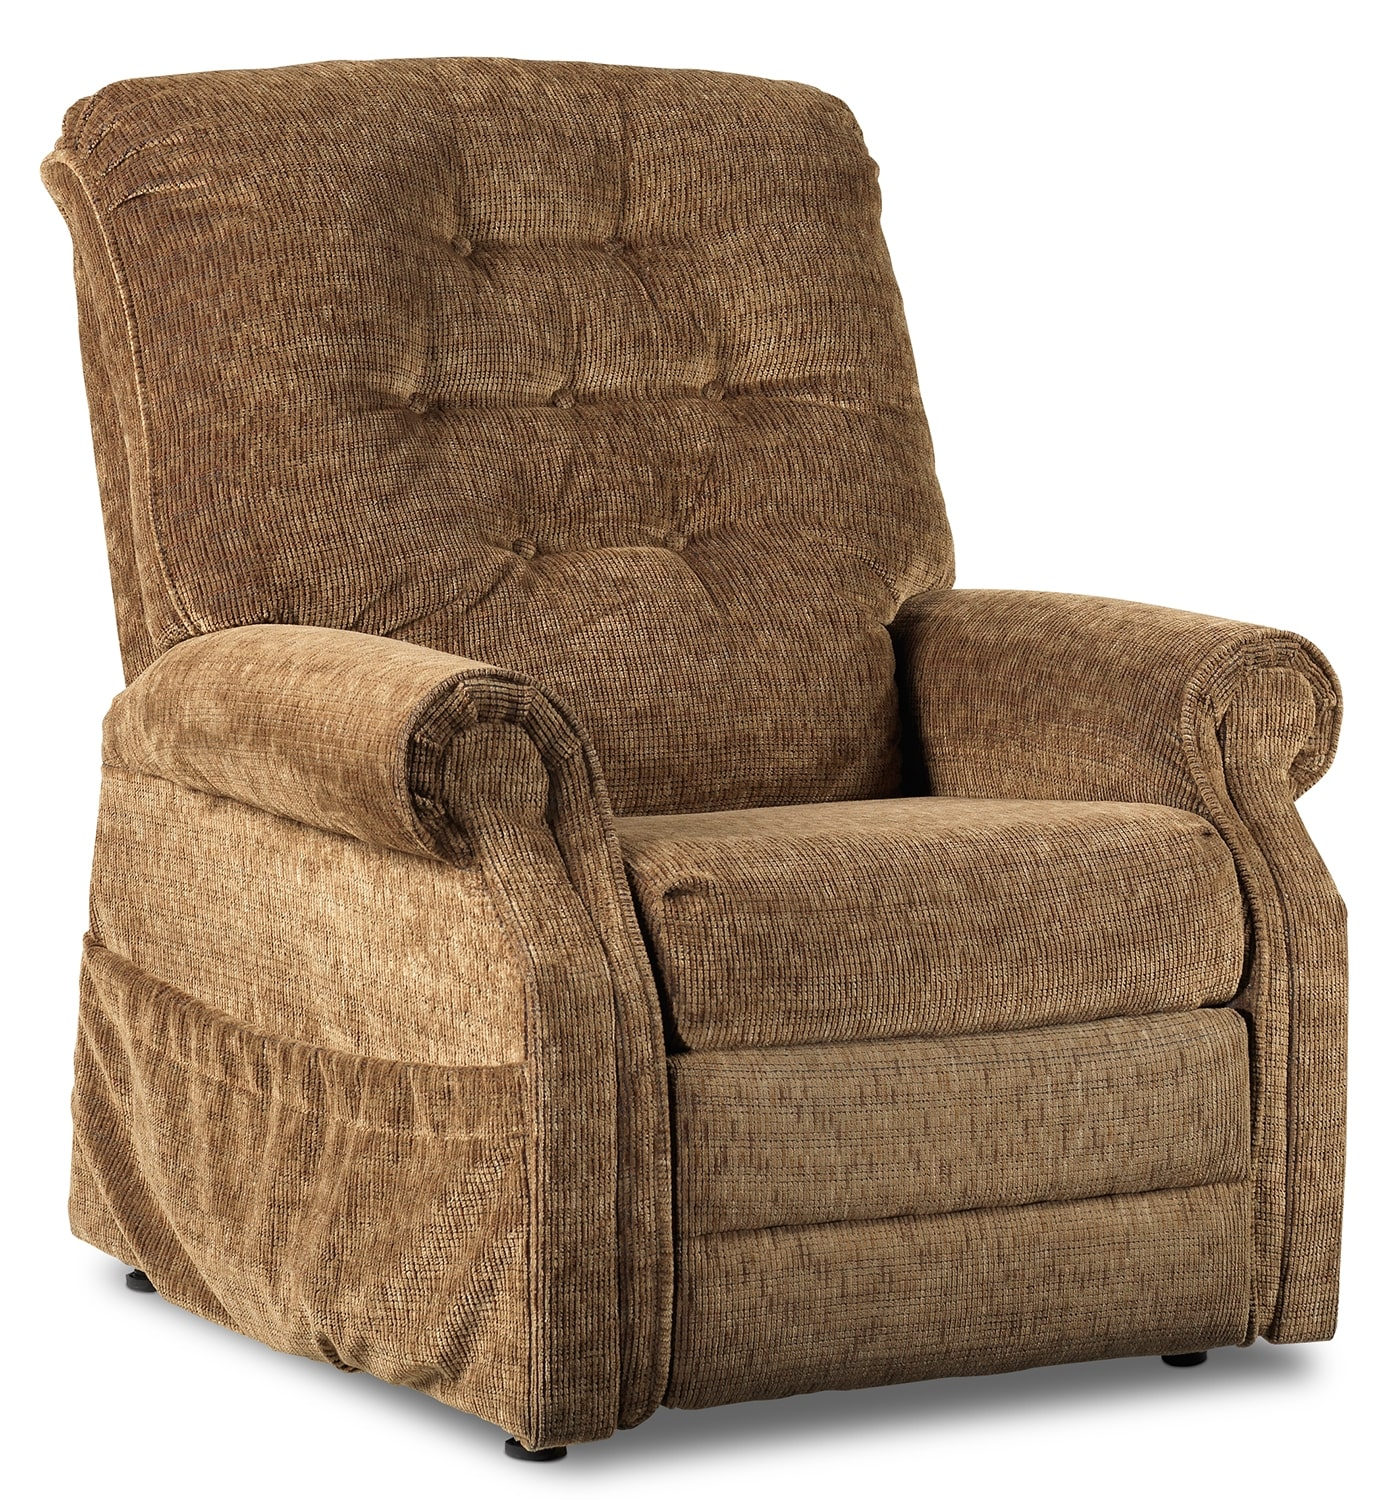 Boost Power Lift Recliner - Light Brown